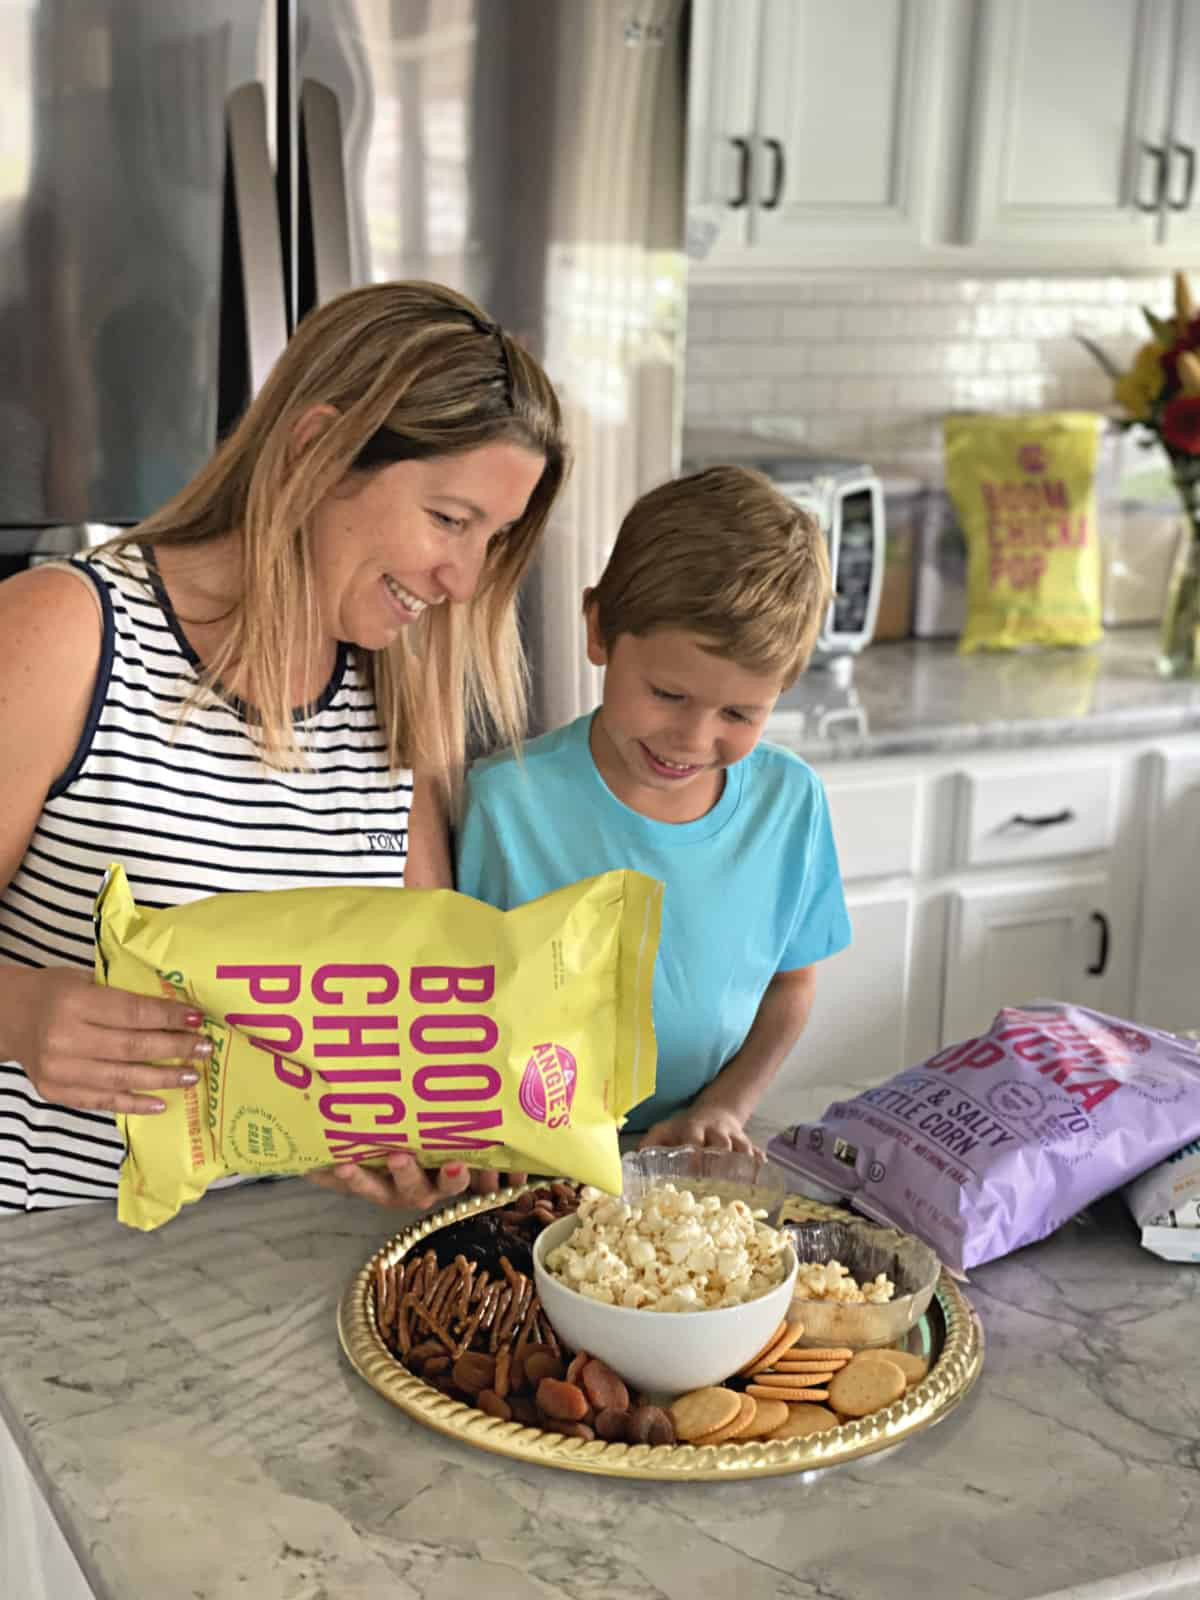 Mother and son pouring Angie's BOOMCHICKAPOP Sea Salt Popcorn into a bowl at countertop.